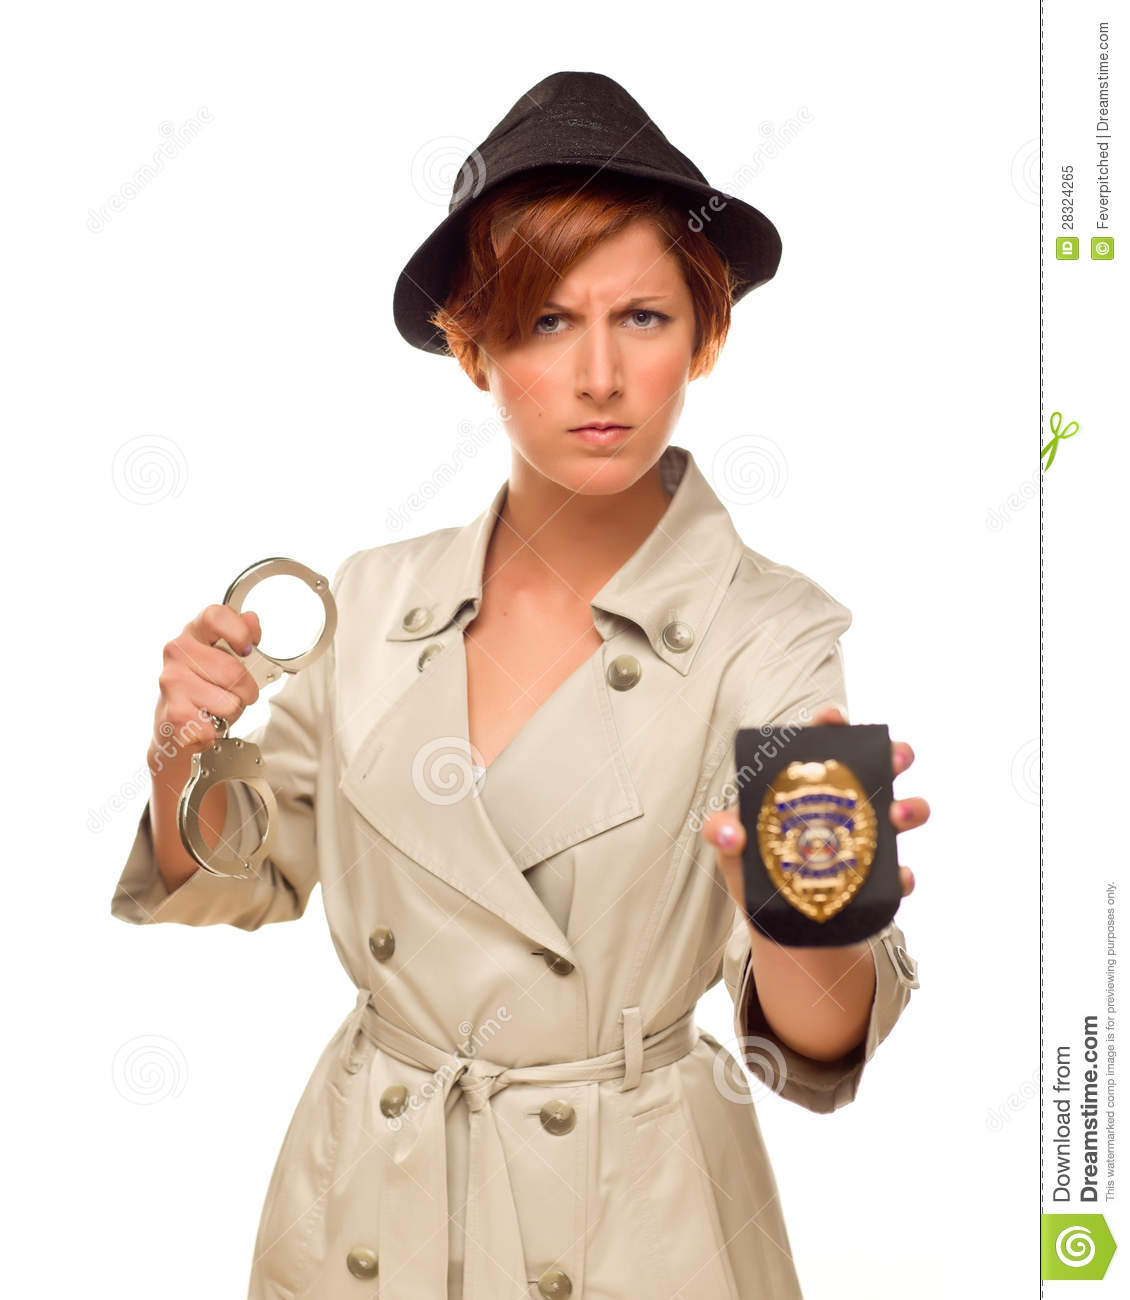 Royalty-Free Stock Photo  sc 1 st  Dreamstime.com & Angry Female Detective With Handcuffs And Badge In Trench Coat Stock ...